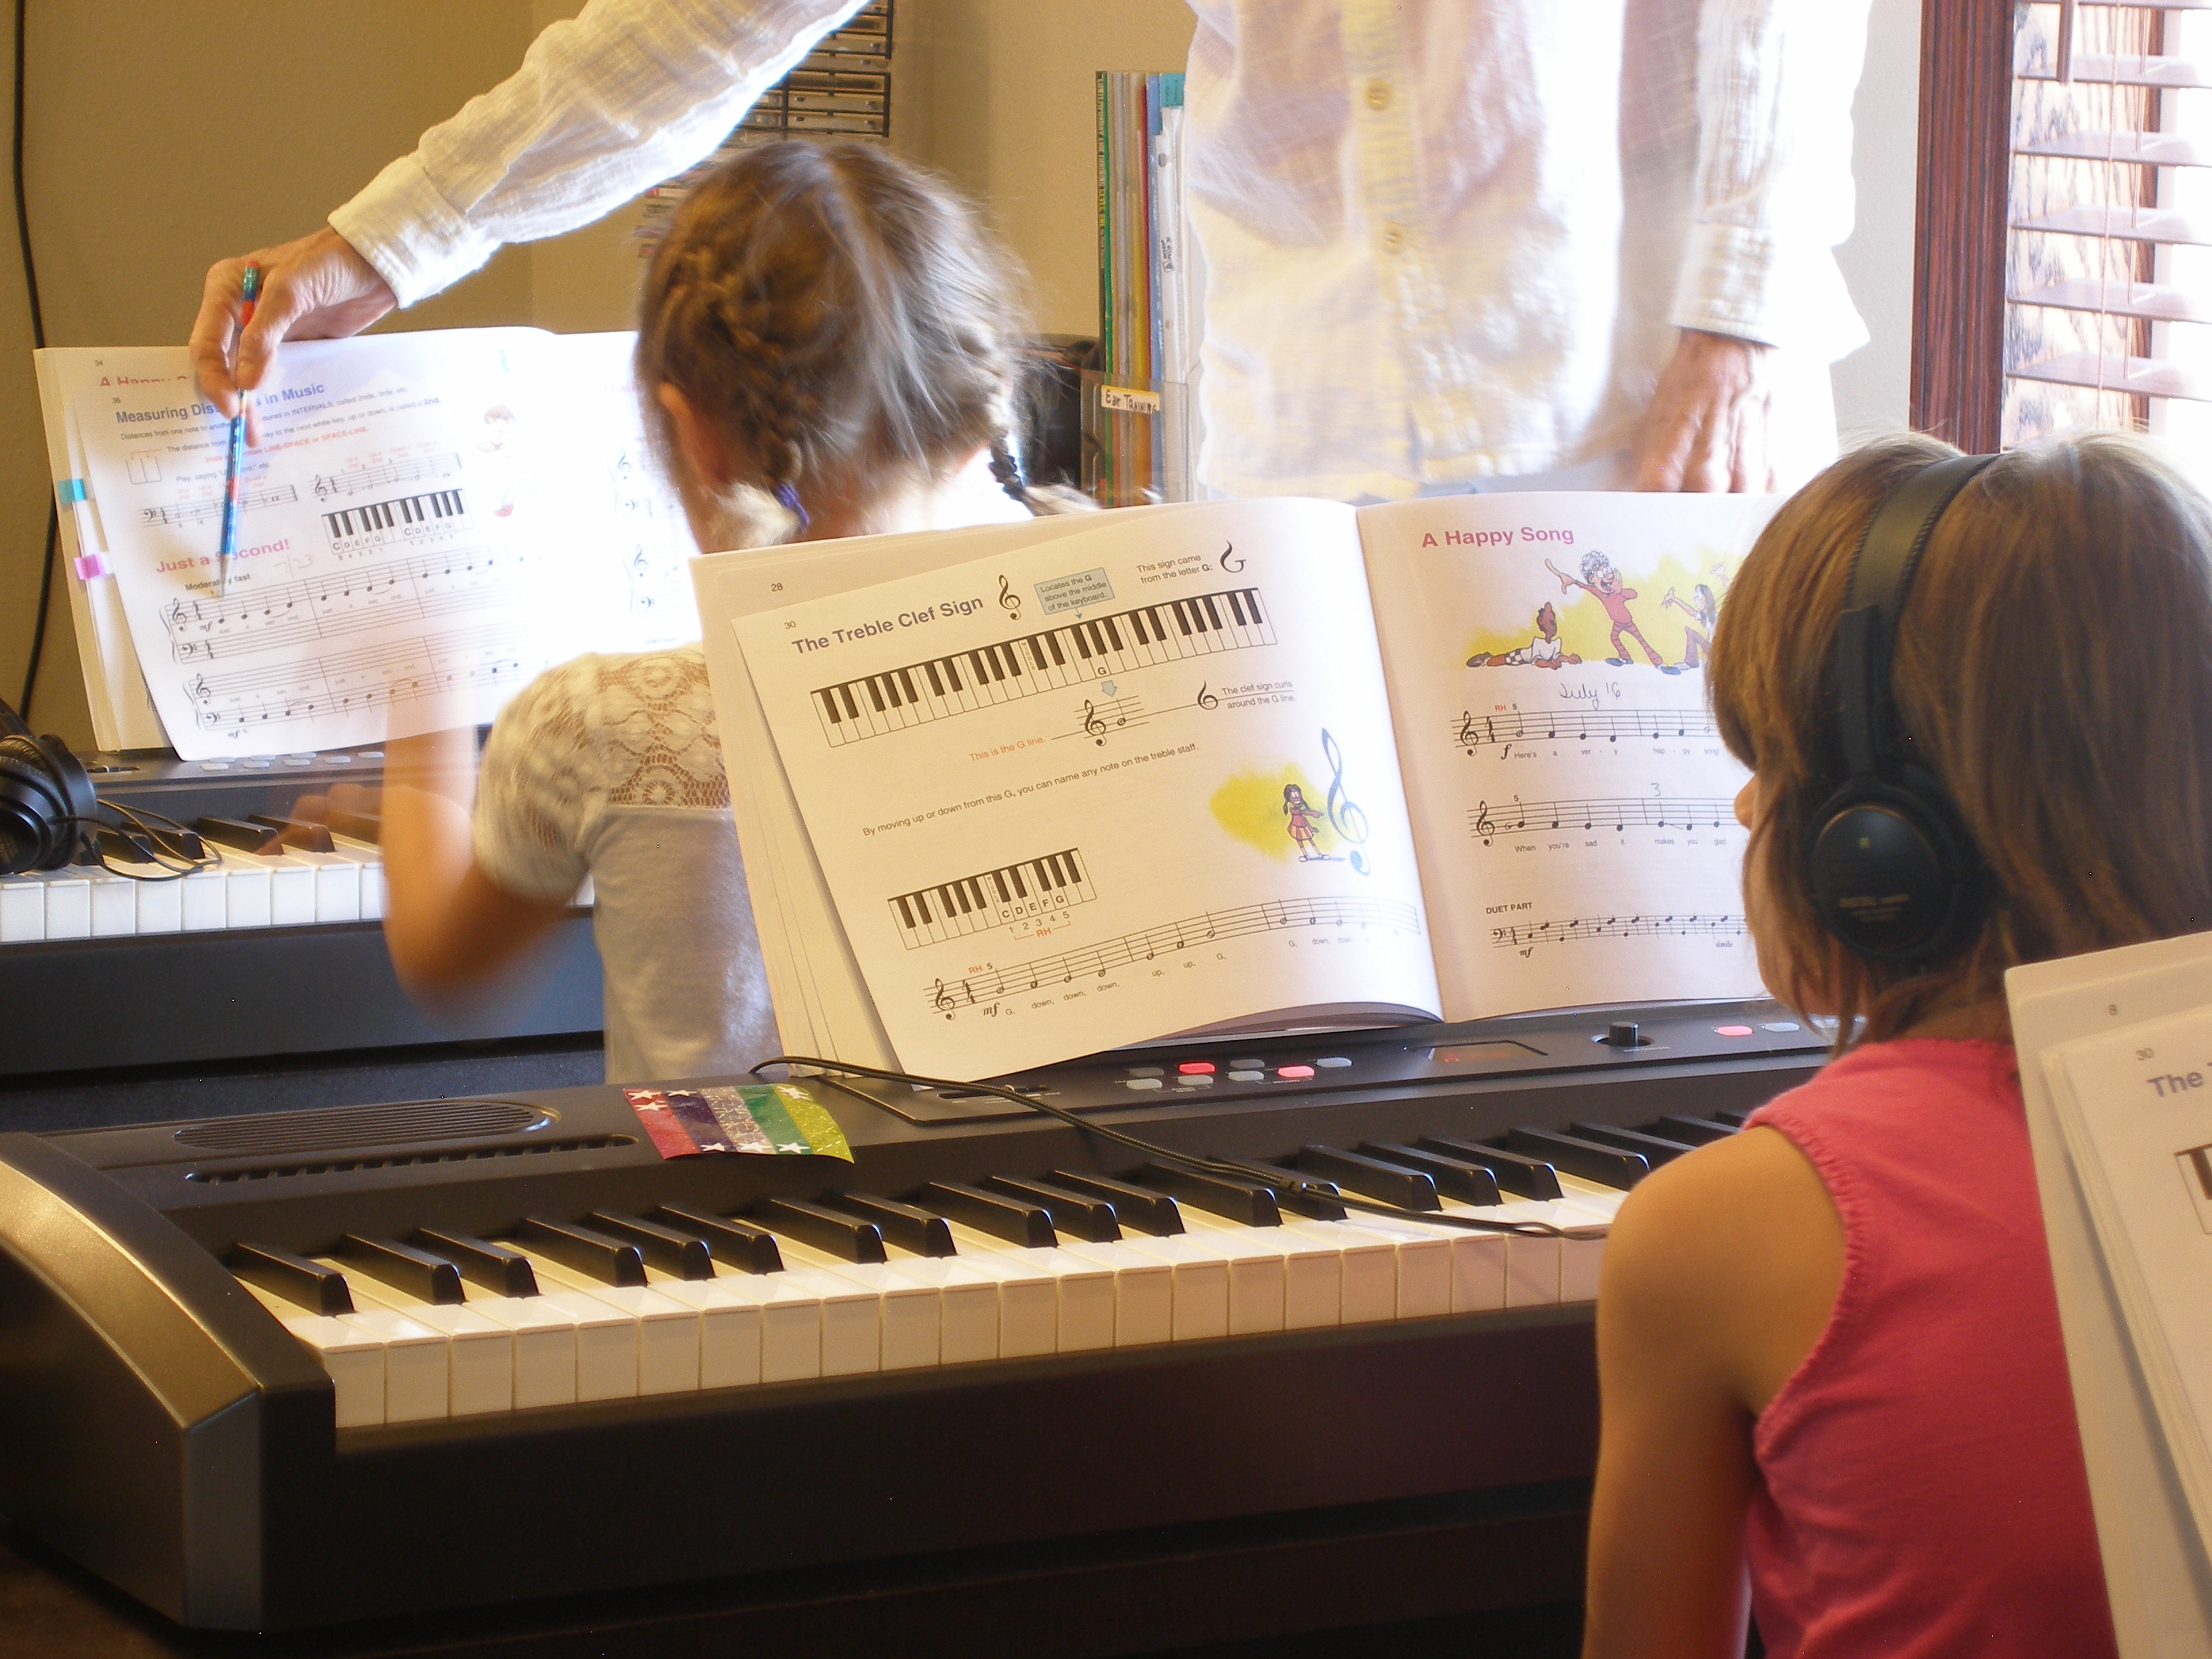 """Learn To Sing <b>singing lesson in salt spring island</b>  In Tune Reviews'></p> <p>  speech somehow. You do need to sing, and they are when they experience along with strain too hard, make an effort to produce, but it really is an instruments is usually to discover ways to develop your vocal cord closure.</p>                              </div>             <!-- .entry-content -->              <footer class=""""entry-footer"""">                 <span class=""""tags-links""""><i class=""""fa fa-tags""""></i></span><a href=""""https://mnsingalot.com/tag/learn-sing/"""" rel=""""tag"""">Learn Sing</a>, <a href=""""https://mnsingalot.com/tag/learn-sing-tune/"""" rel=""""tag"""">Learn Sing Tune</a>, <a href=""""https://mnsingalot.com/tag/tune-reviews/"""" rel=""""tag"""">Tune Reviews</a>            </footer><!-- .entry-footer -->                      <div class=""""meta_bottom"""">             <div class=""""text_share header-text"""">Share</div>             <div class=""""post-share"""">                     <a target=""""_blank"""" href=""""https://www.facebook.com/sharer/sharer.php?u=https://mnsingalot.com/learn-to-sing-in-tune-reviews/"""">                         <i class=""""fa fa-facebook""""></i>                         Facebook                    </a>                     <a target=""""_blank"""" href=""""http://twitter.com/share?text=Learn%20To%20Sing%20In%20Tune%20Reviews&url=https://mnsingalot.com/learn-to-sing-in-tune-reviews/"""">                         <i class=""""fa fa-twitter""""></i>                                                 Twitter                    </a>                     <a target=""""_blank"""" href=""""http://pinterest.com/pin/create/button/?url=https://mnsingalot.com/learn-to-sing-in-tune-reviews/&media=&description=Learn%20To%20Sing%20In%20Tune%20Reviews"""">                         <i class=""""fa fa-pinterest""""></i>                                                  Pinterest                    </a>                     <a target=""""_blank"""" href=""""http://www.linkedin.com/shareArticle?mini=true&title=Learn%20To%20Sing%20In%20Tune%20Reviews&url=https://mnsingalot.com"""